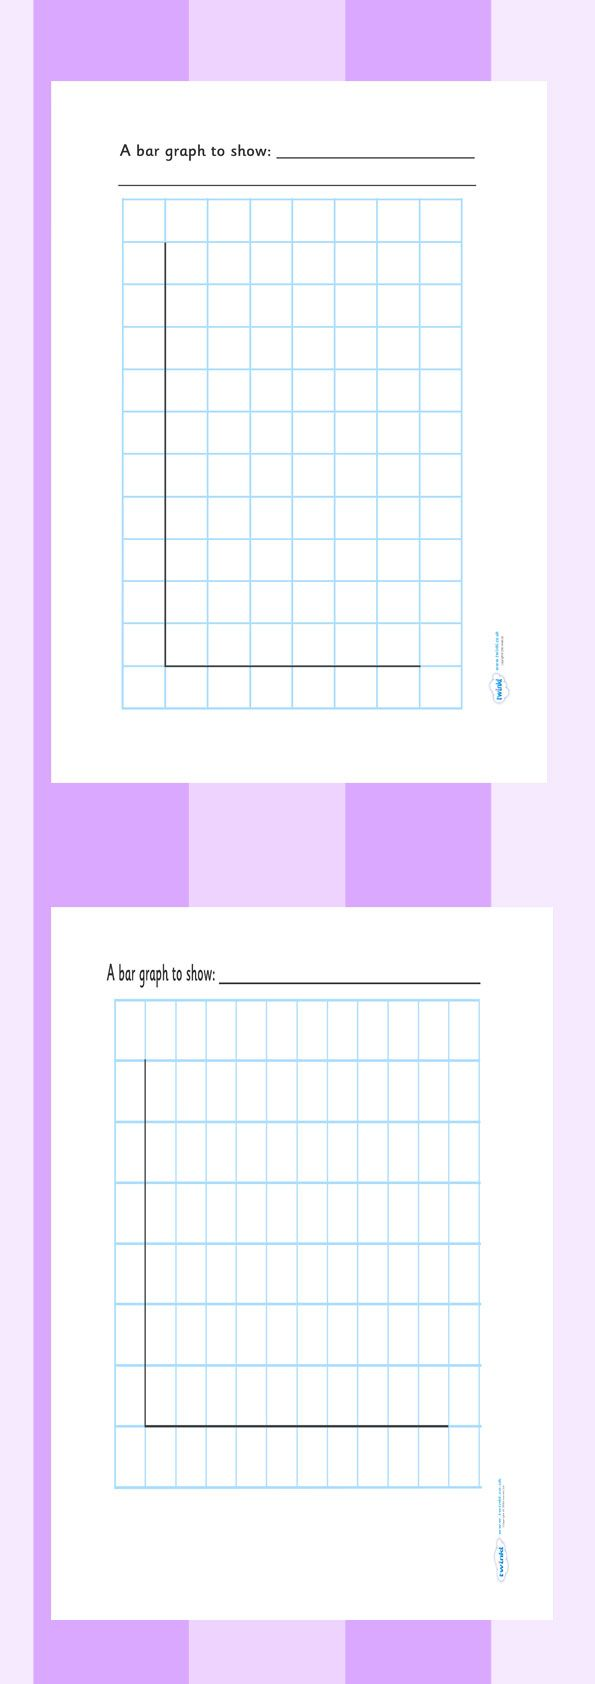 Twinkl Resources >> Bar Graph Template  >> Classroom printables for Pre-School, Kindergarten, Elementary School and beyond! Math, Worksheets, Bar Graphs